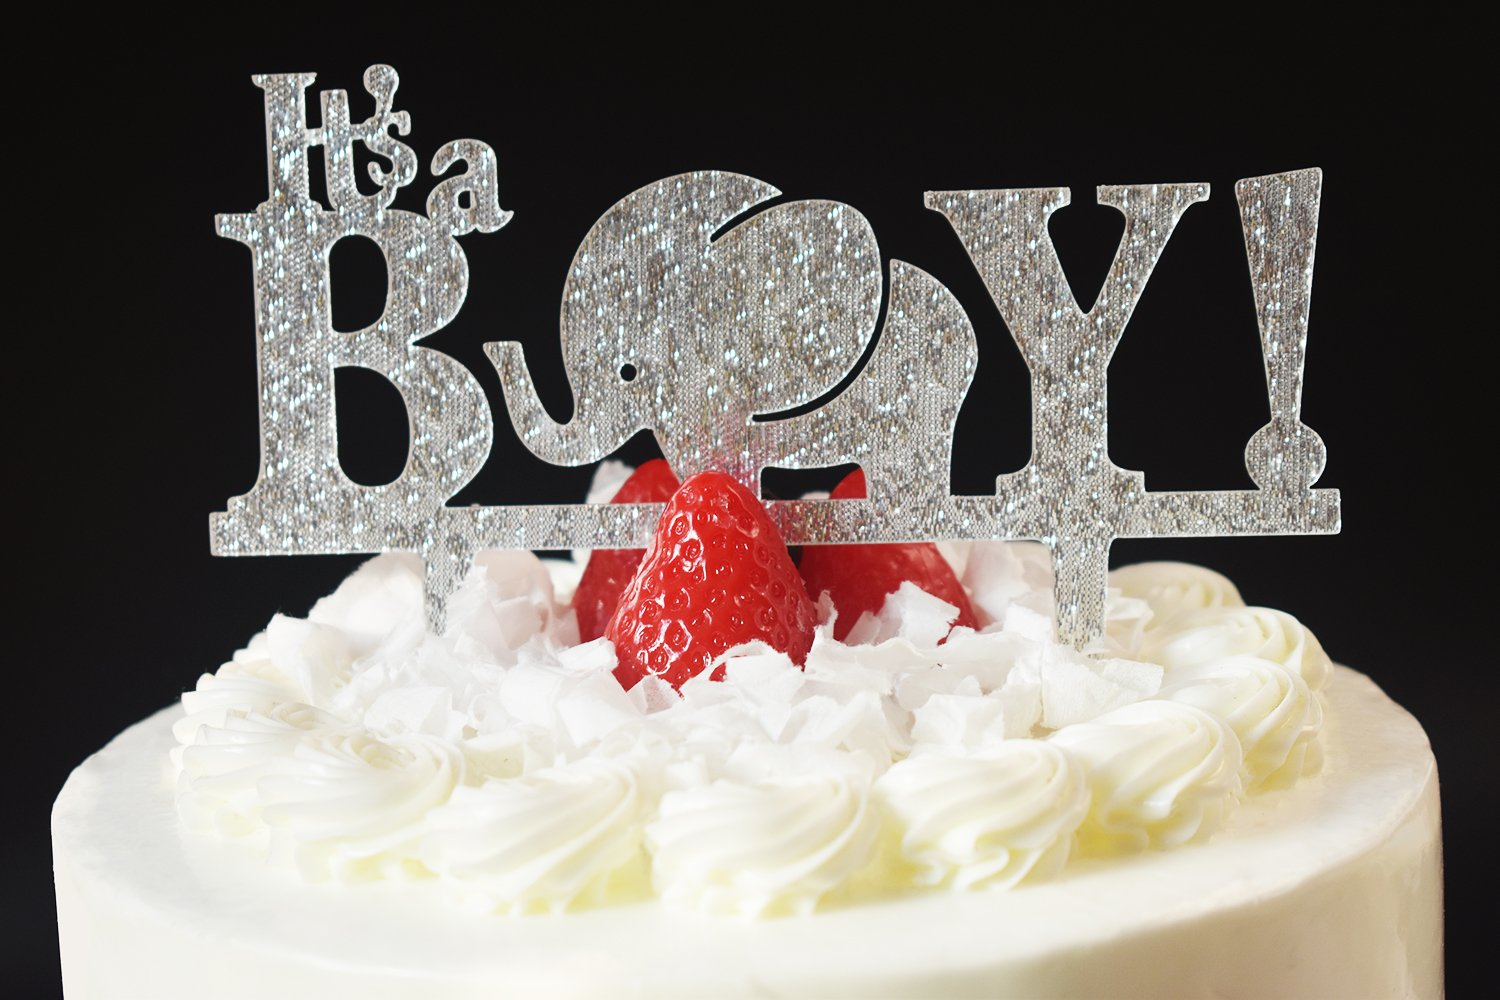 Brcohco Its A Boy  Cake Topper Pregnancy Announcement Baby Shower Gender Reveal Sliver Glitter with Elephant Sign Party Favors Decorations Supplies